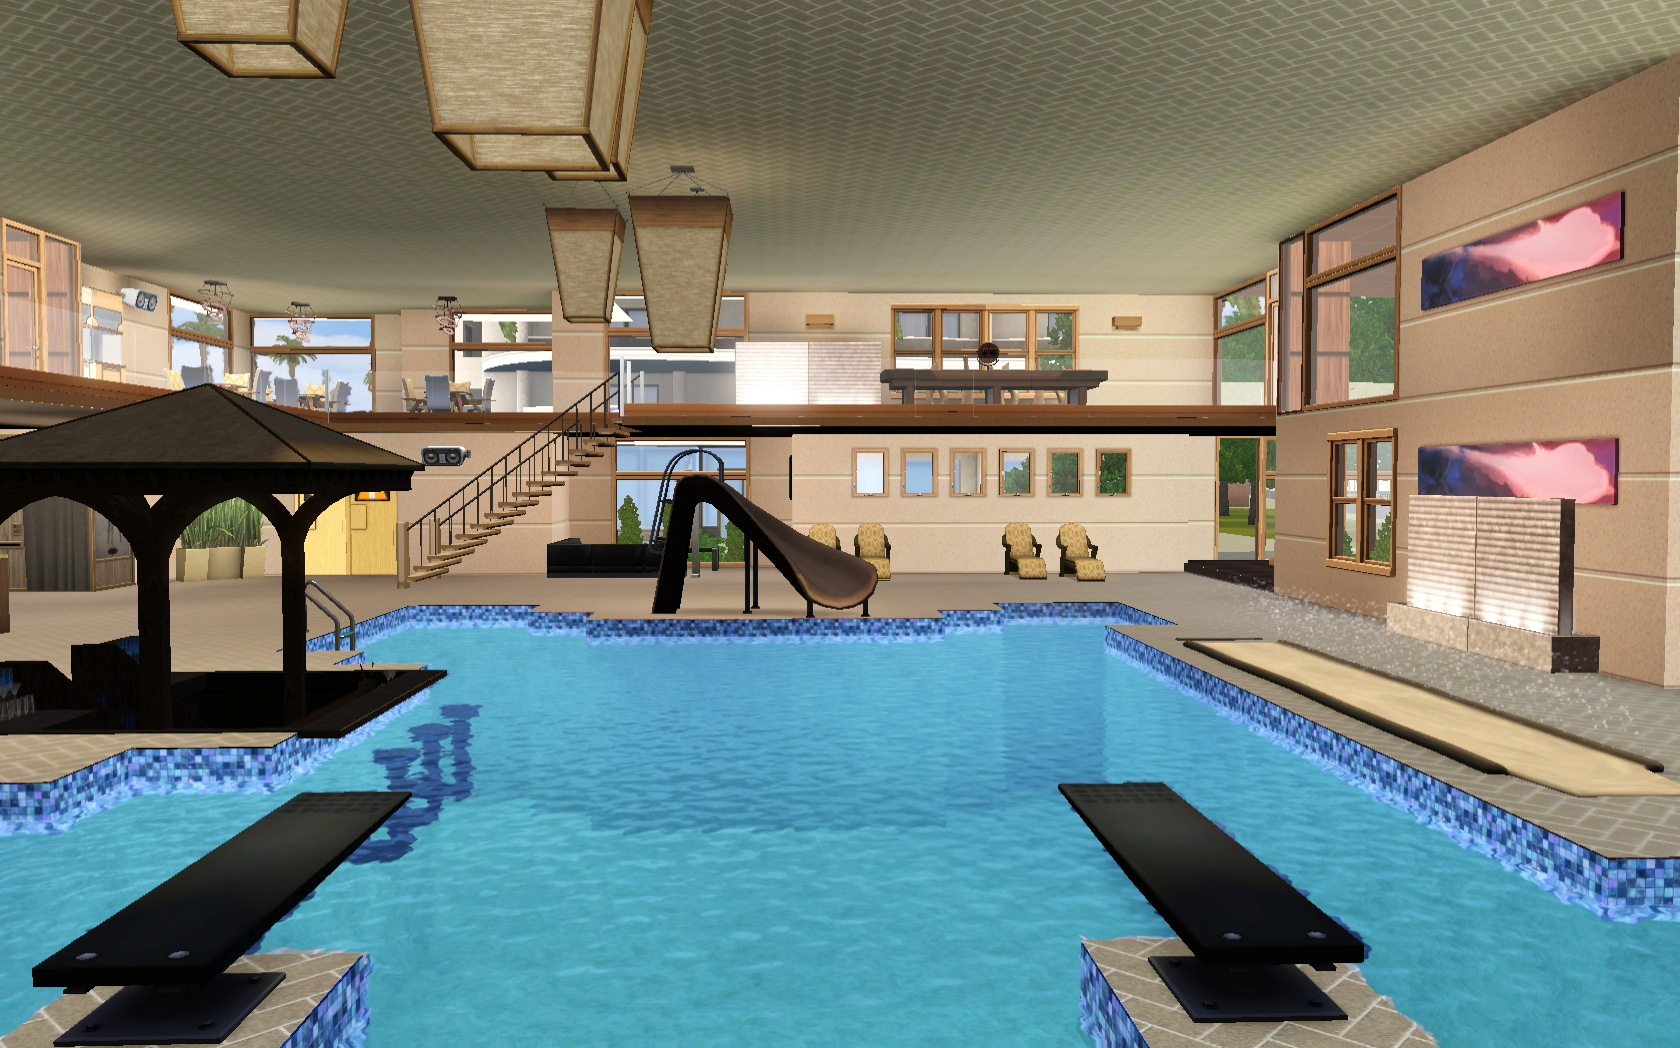 Mod the sims liquid h2o indoor pool for Pool design sims 4